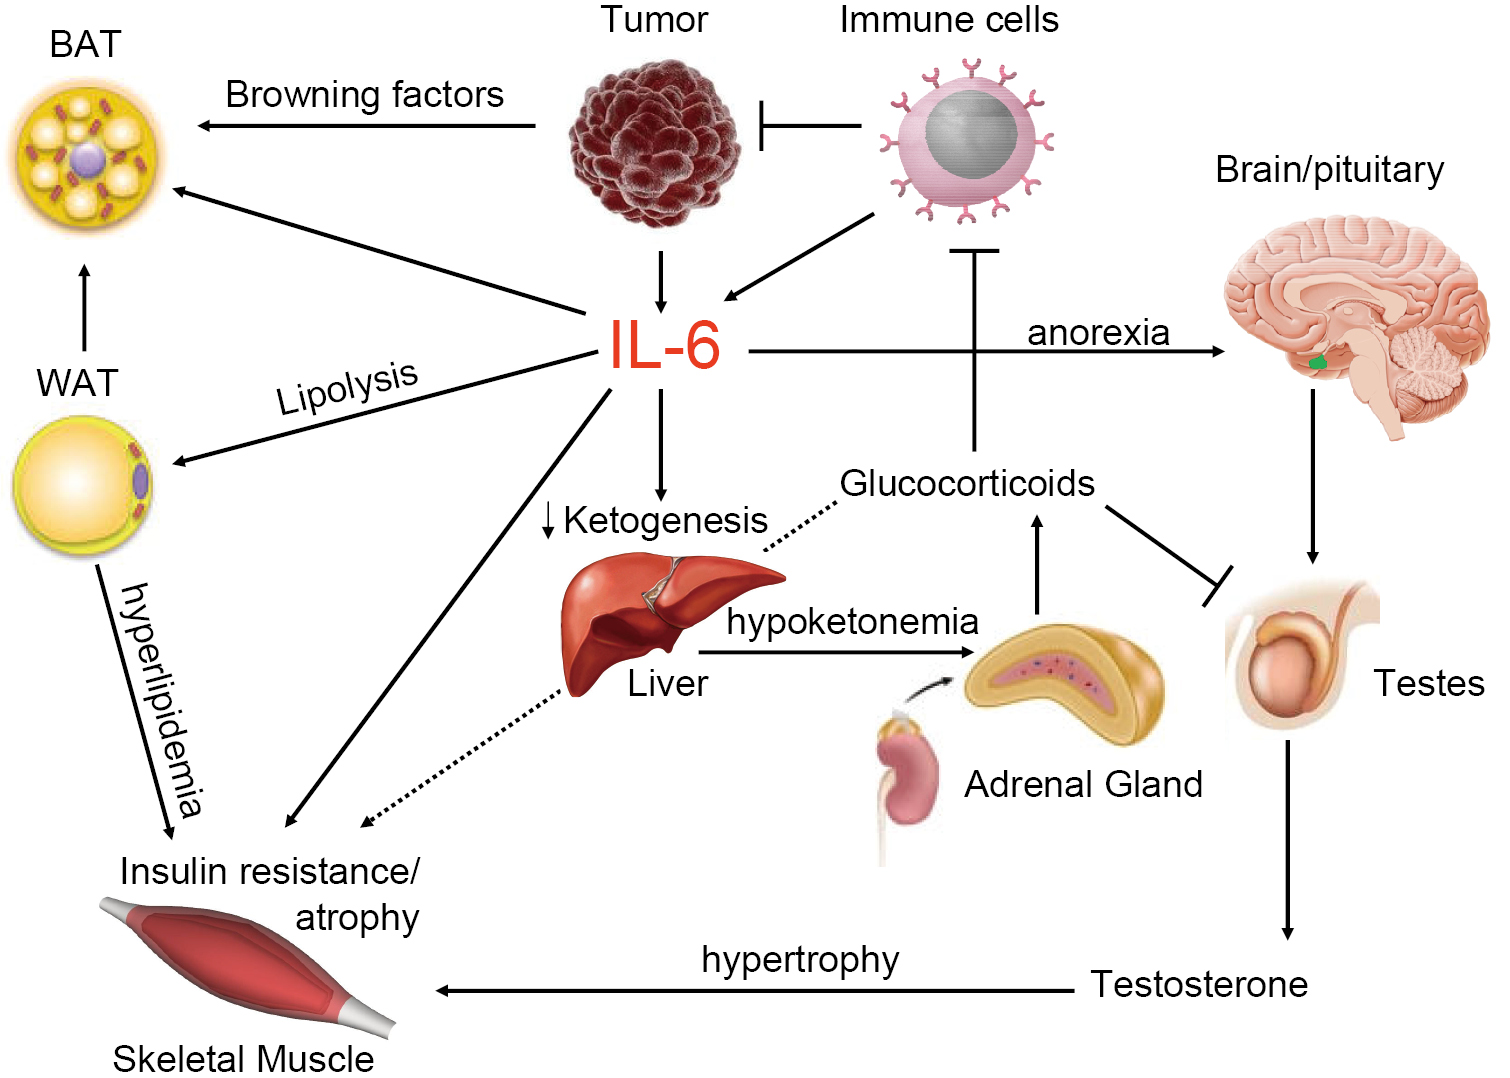 Sensitivity of mice to lipopolysaccharide is increased by a high saturated fat and cholesterol diet